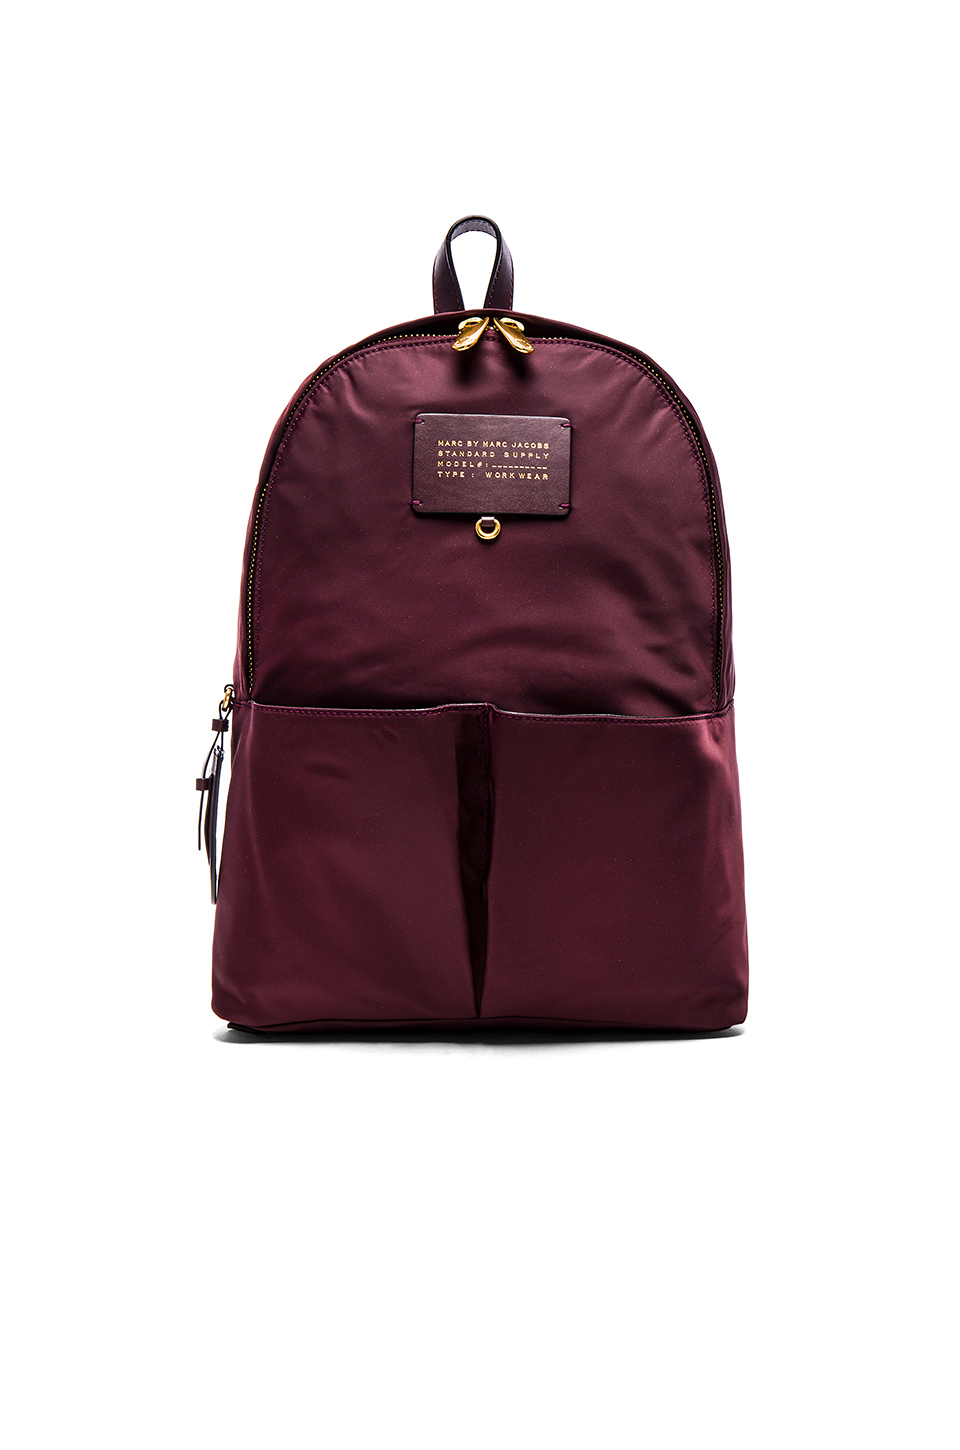 lyst marc by marc jacobs preppy legend backpack in purple. Black Bedroom Furniture Sets. Home Design Ideas